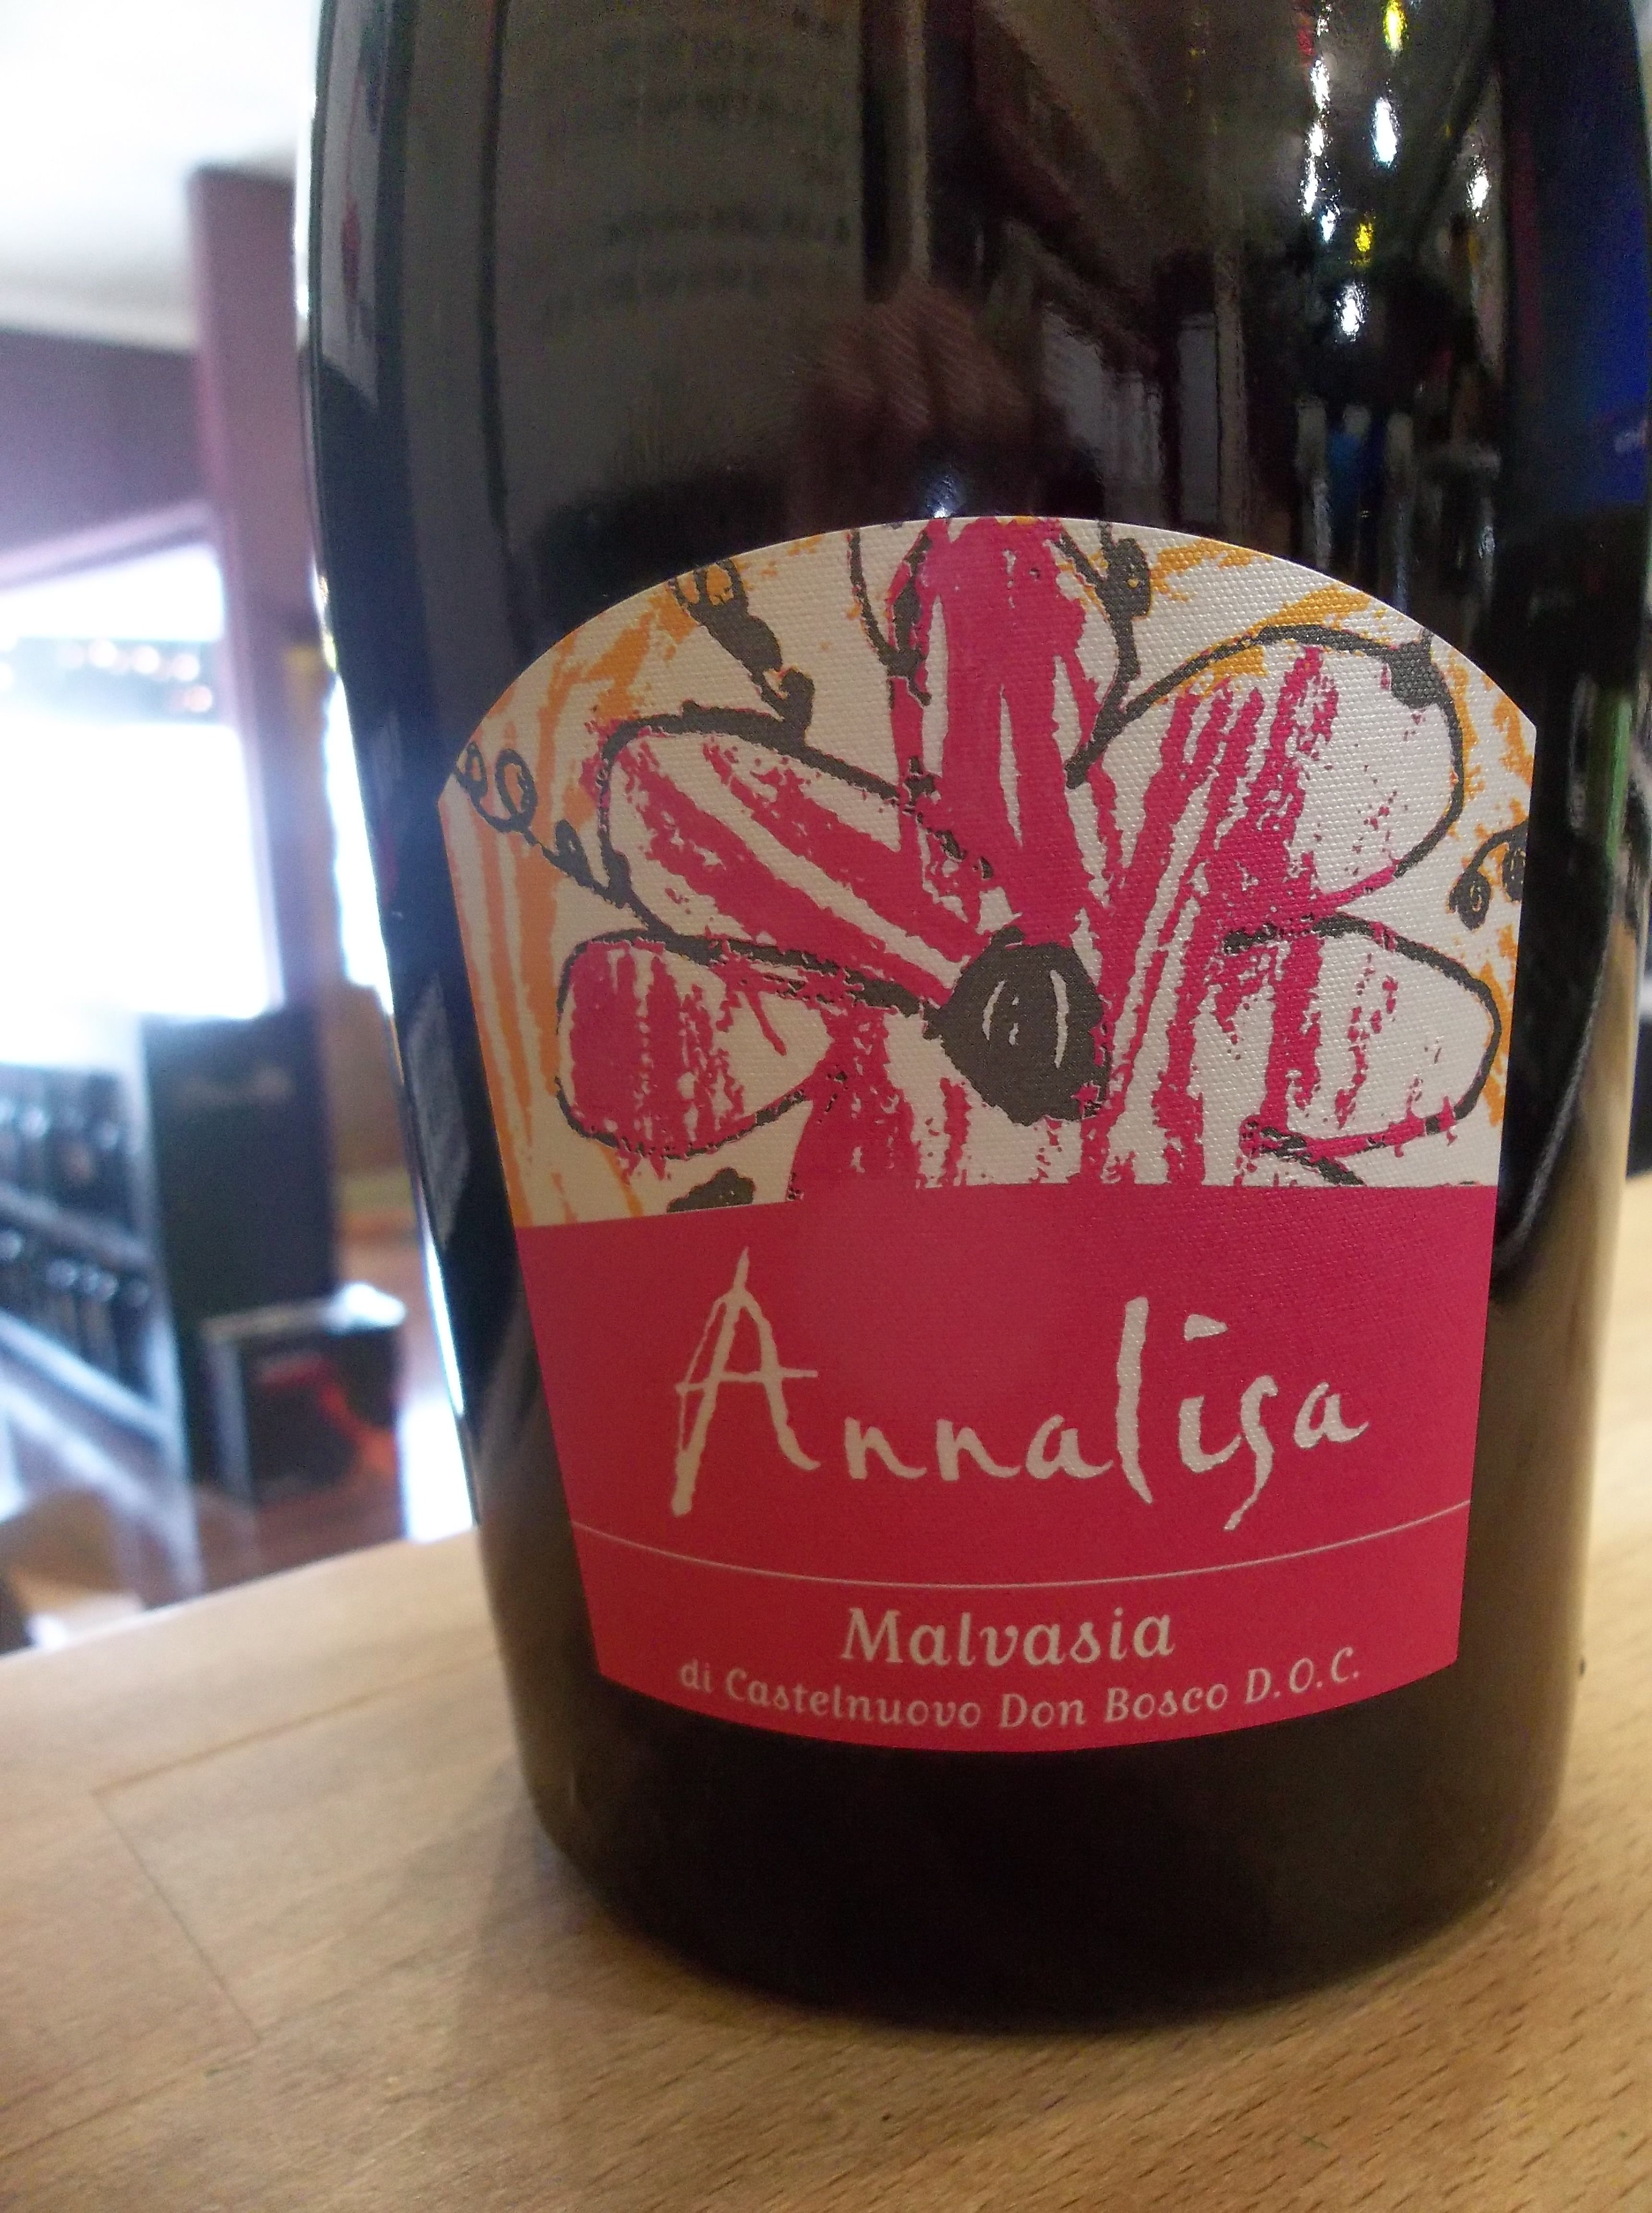 Annalisa Malvasia Who Knew A Wine Named After Her Wine Gifts Wine Names Red Wine Glasses